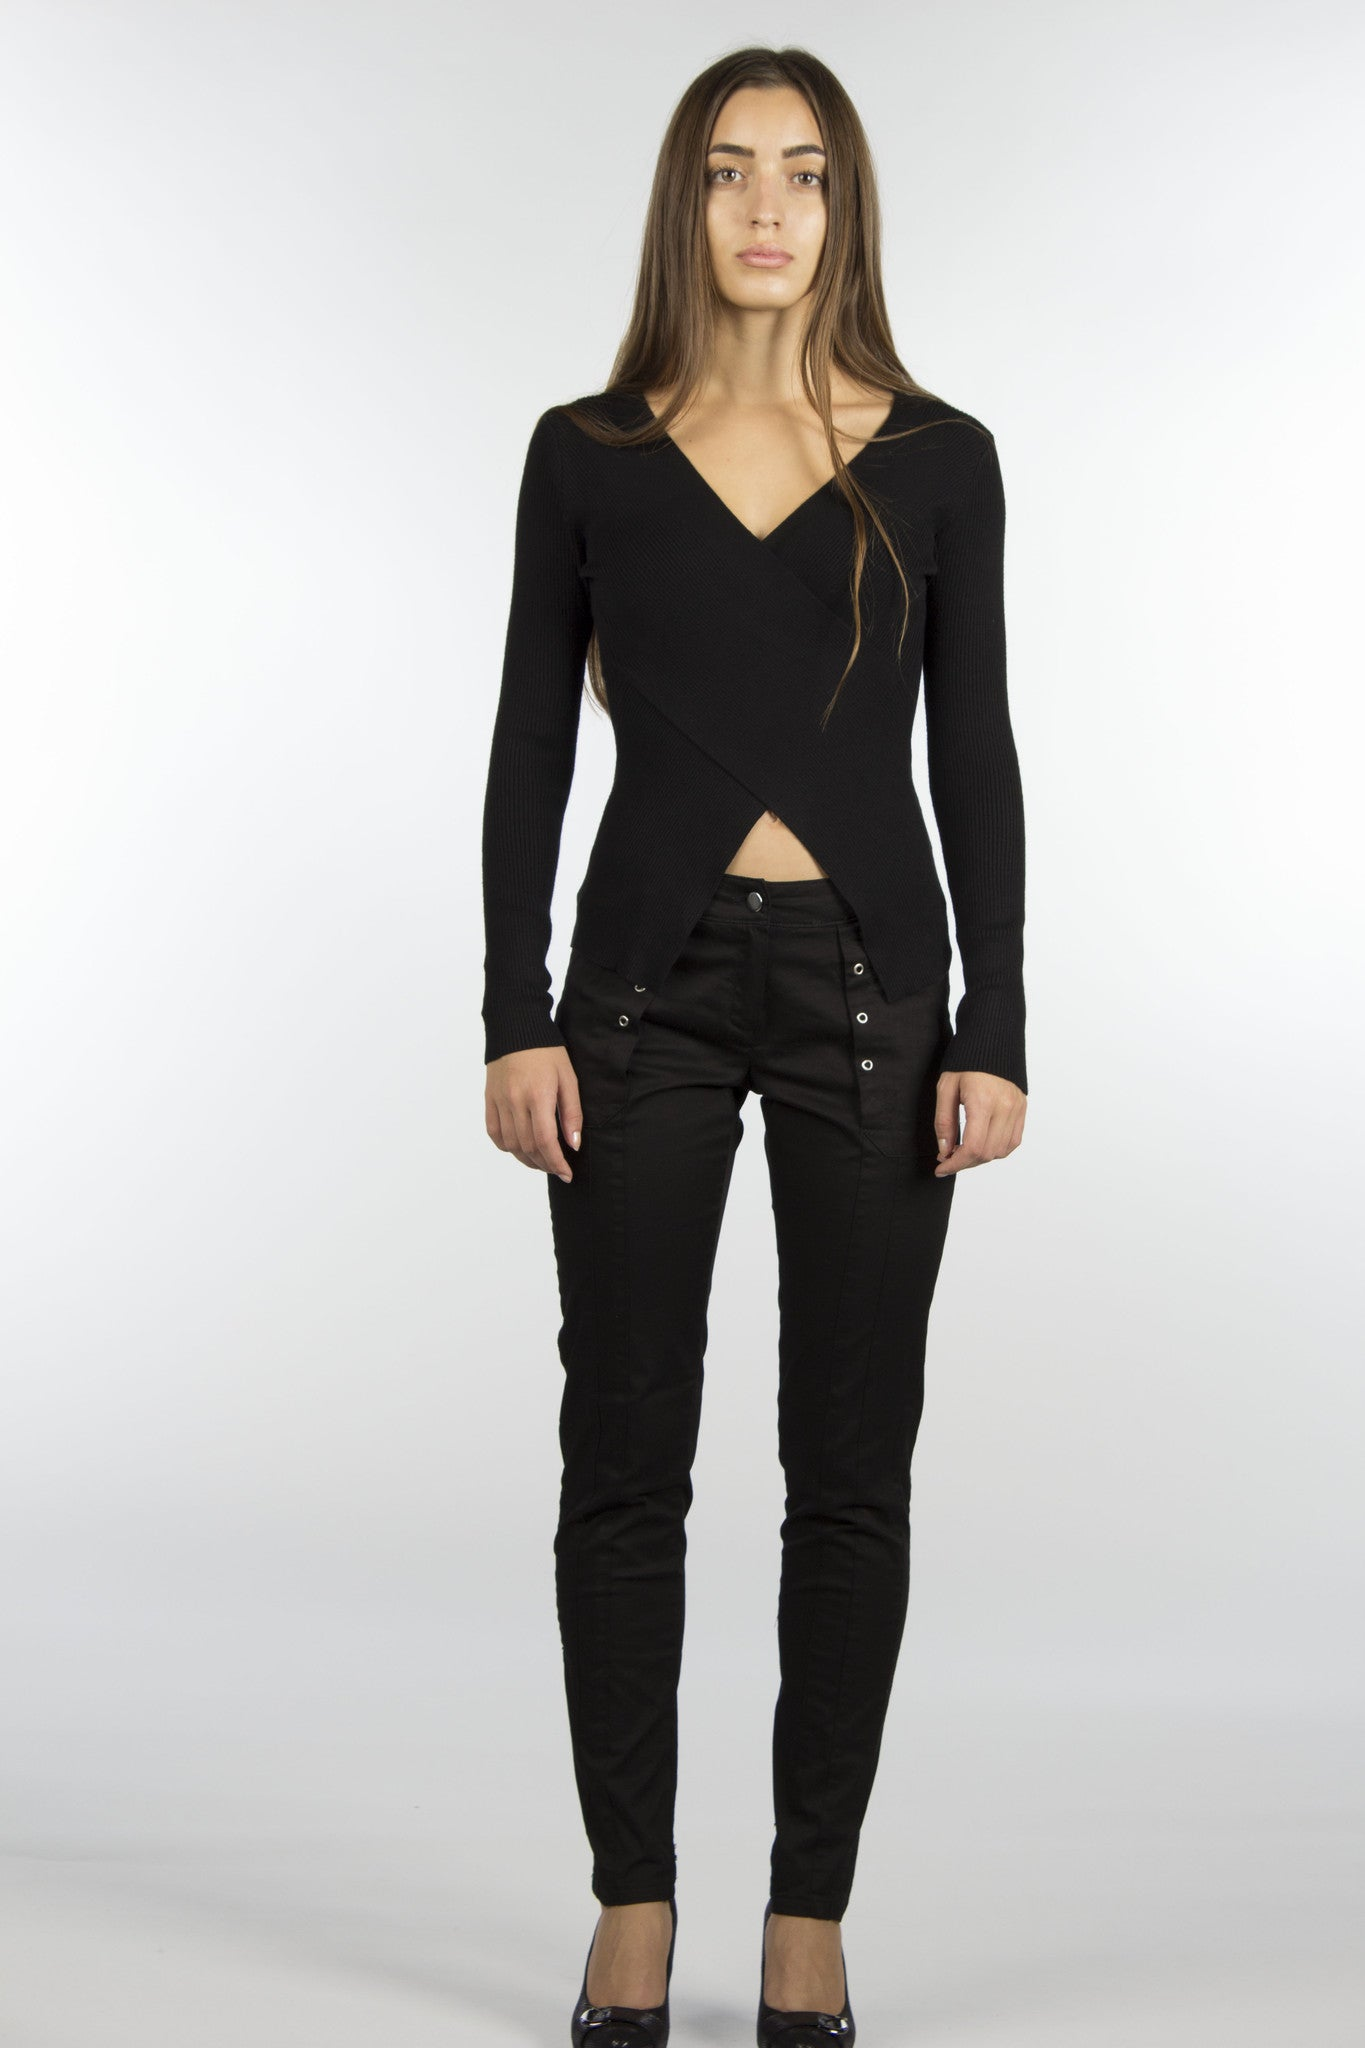 grommet black cotton skinny pants